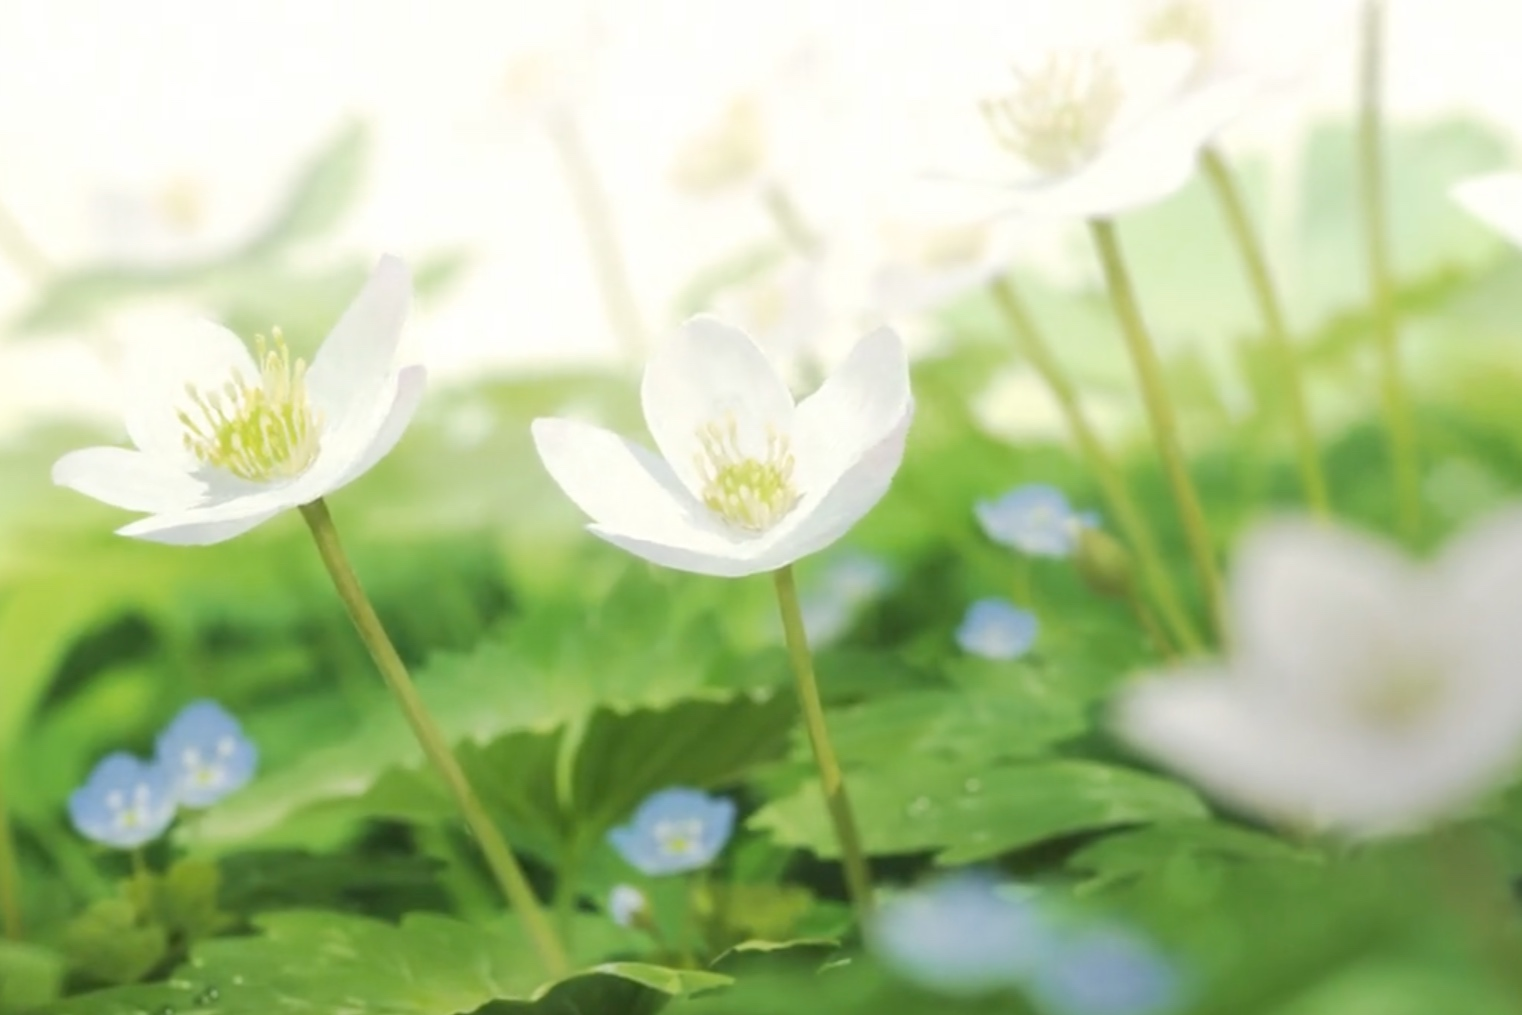 Flowers in Japanese animation